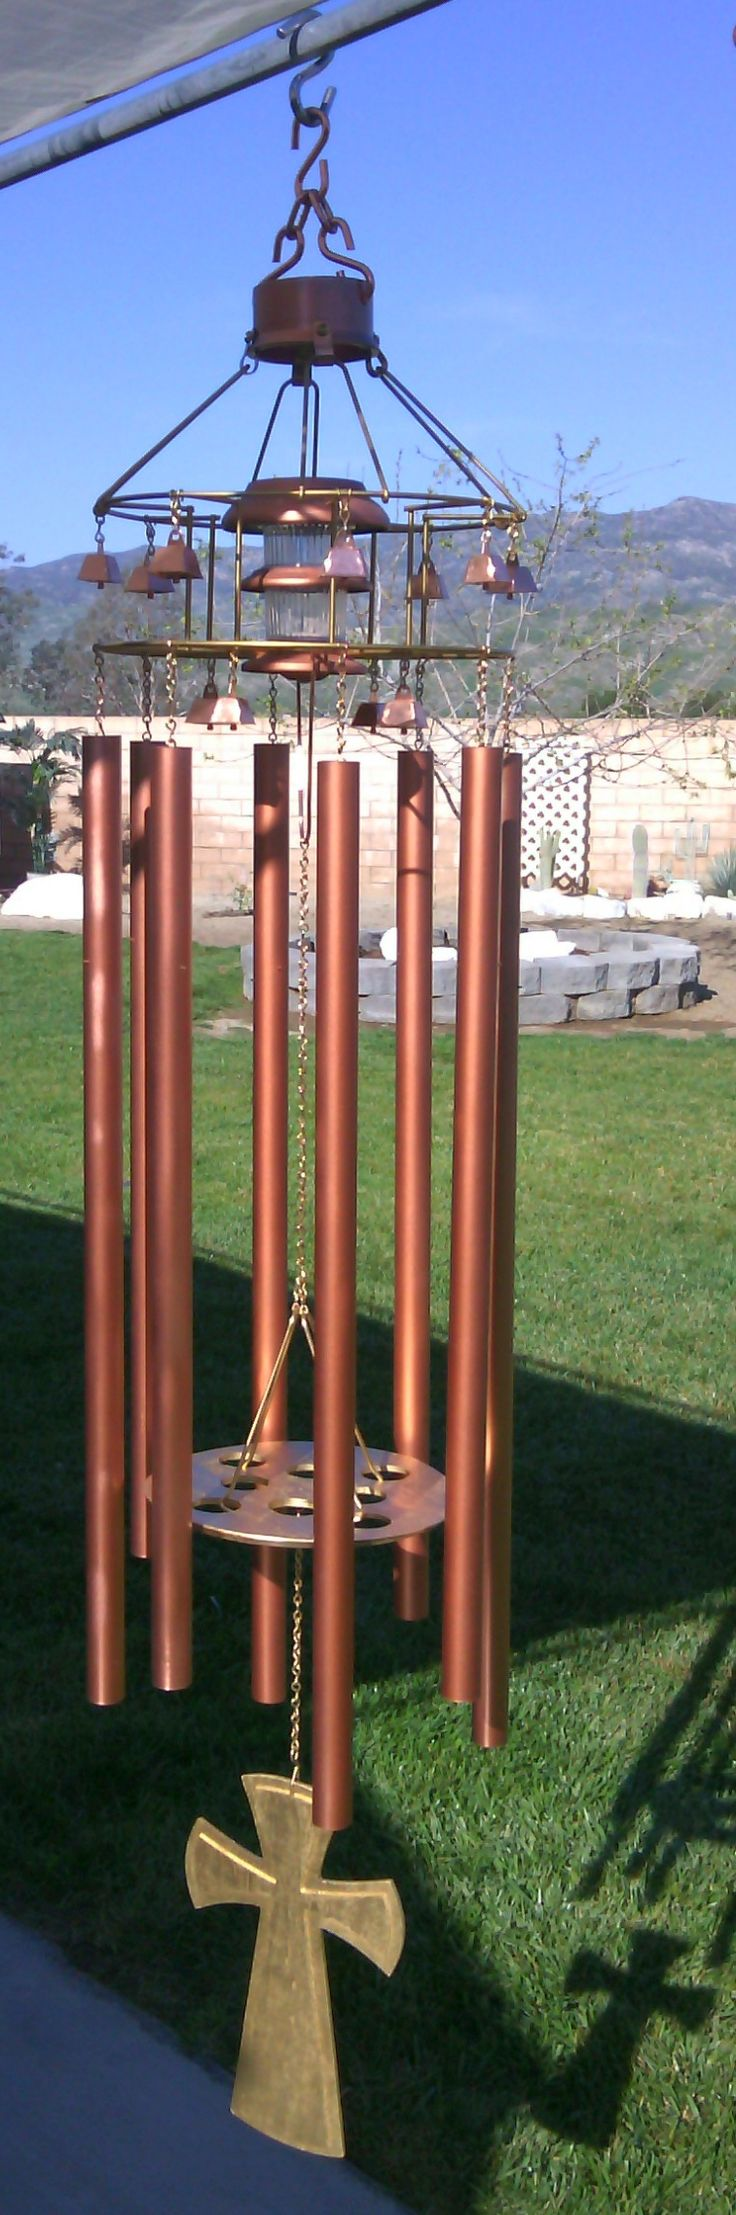 110 best images about Windchimes on Pinterest | Engineering ...